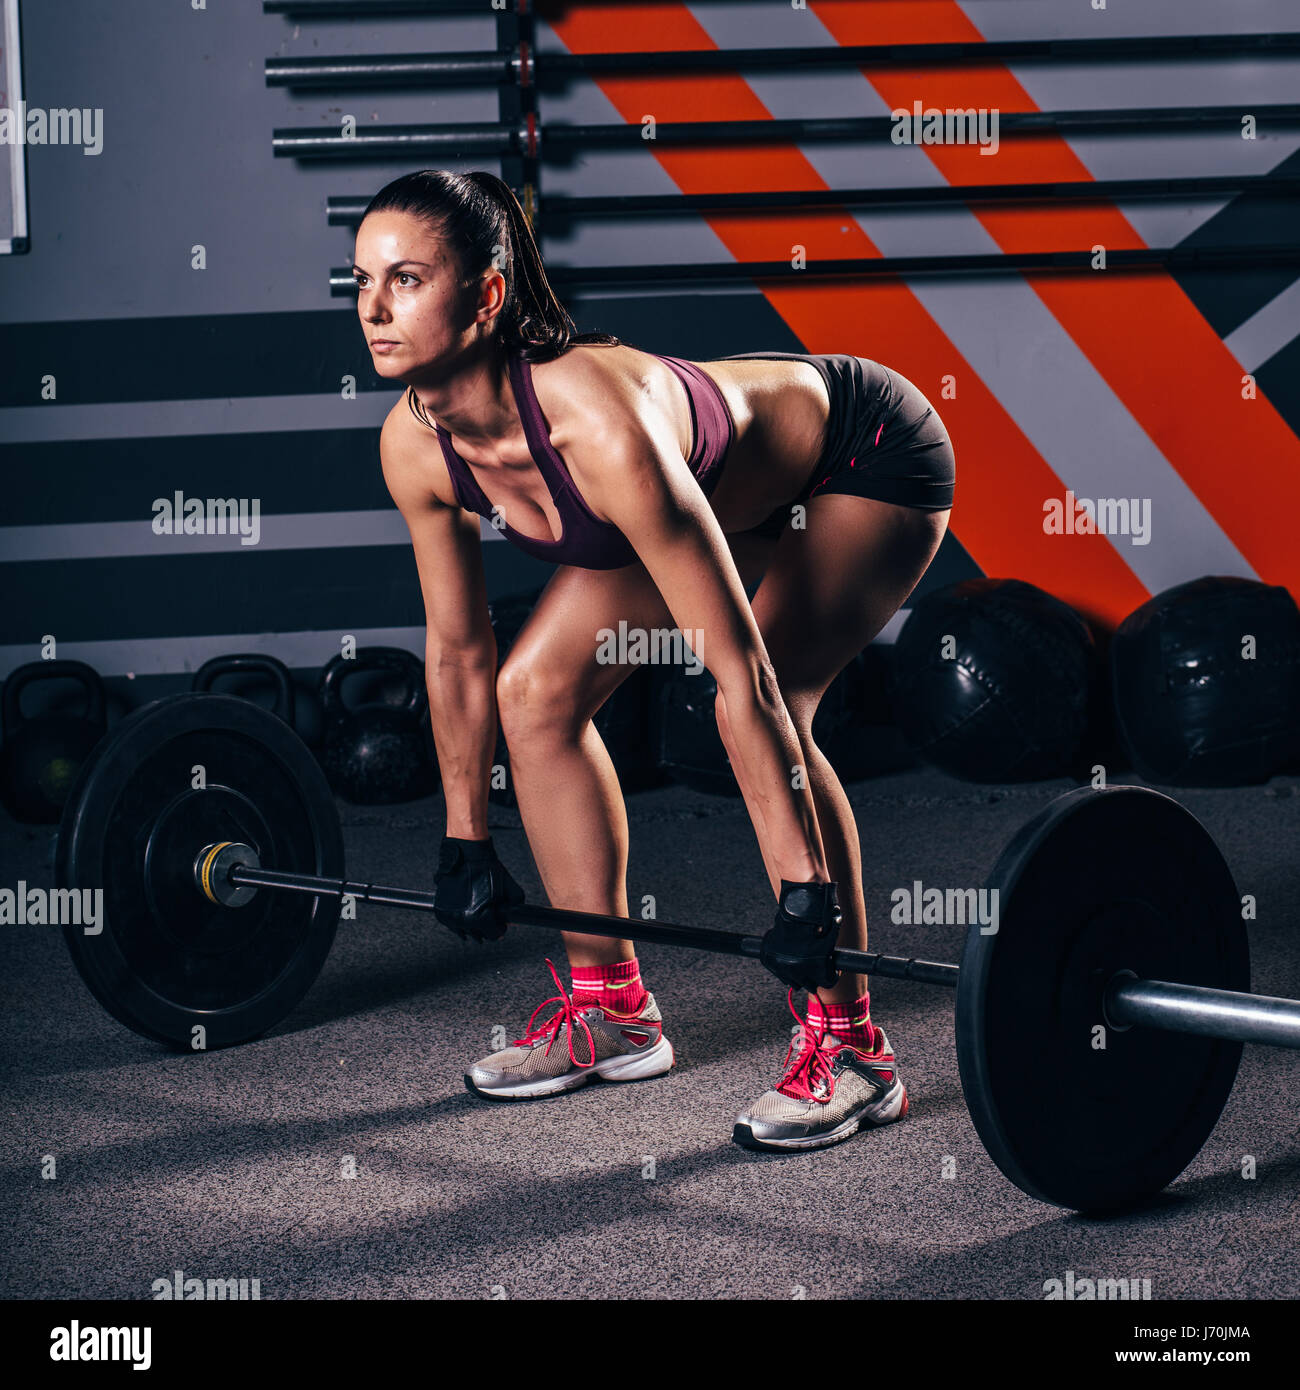 CrossFit workout - Stock Image